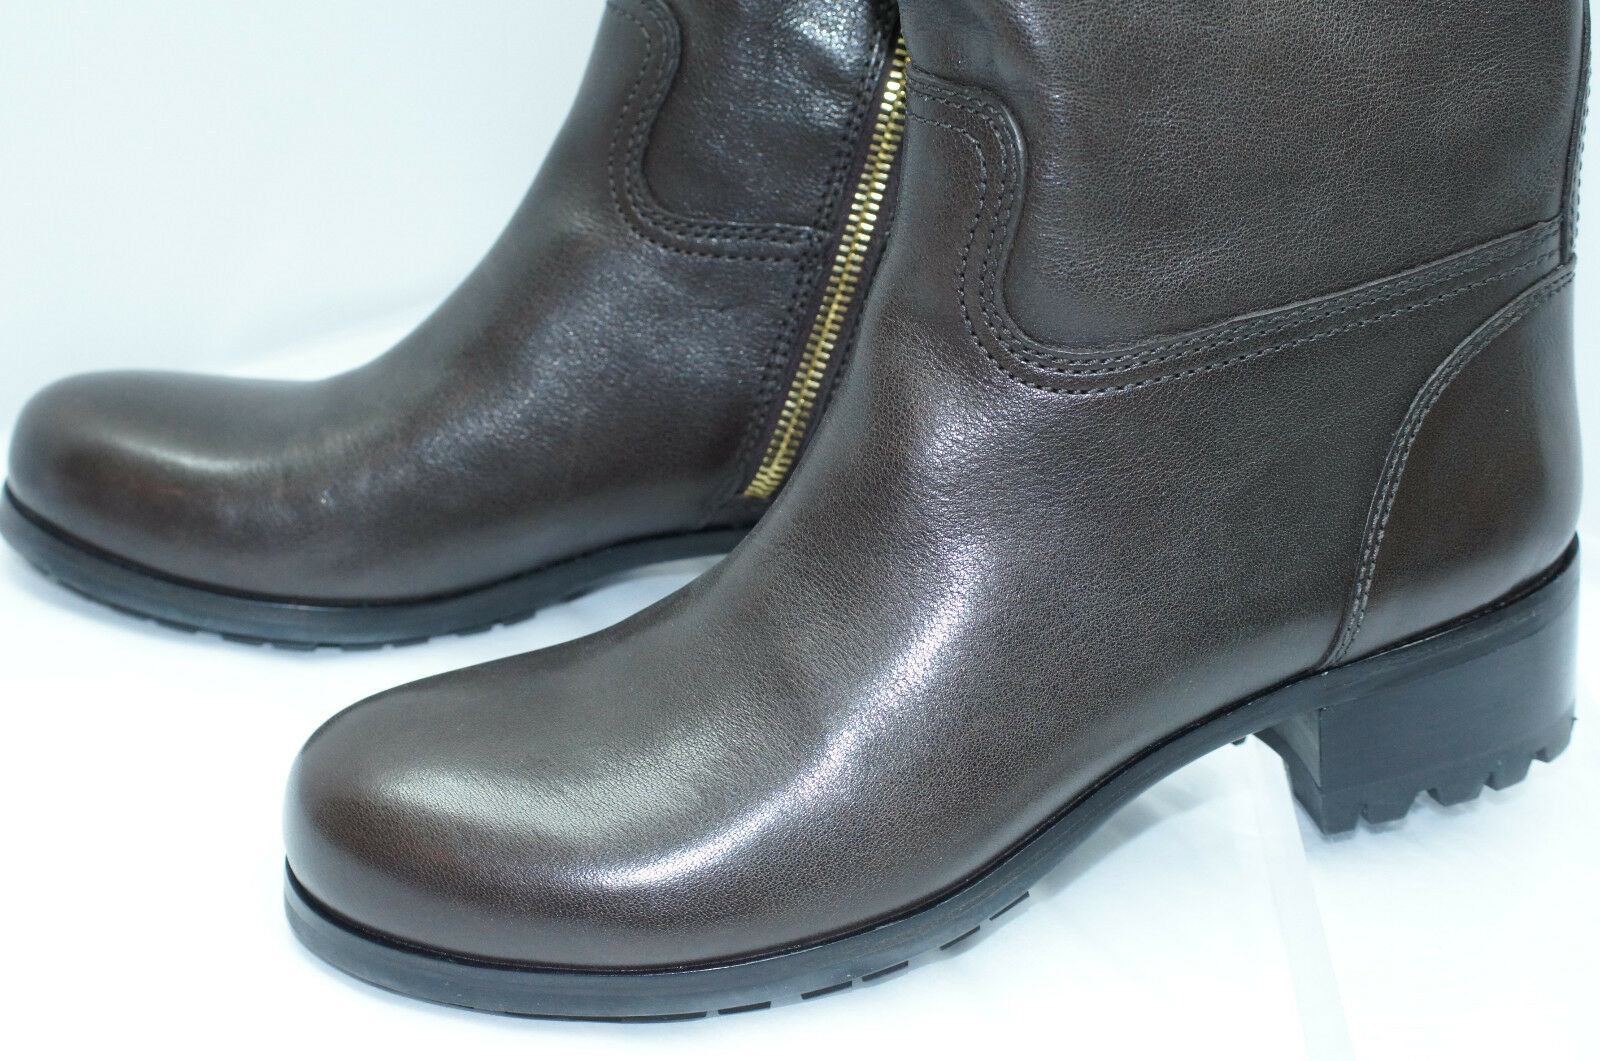 New Prada Womens Boots Knee High Brown Rain Size 39 Leather Shoes